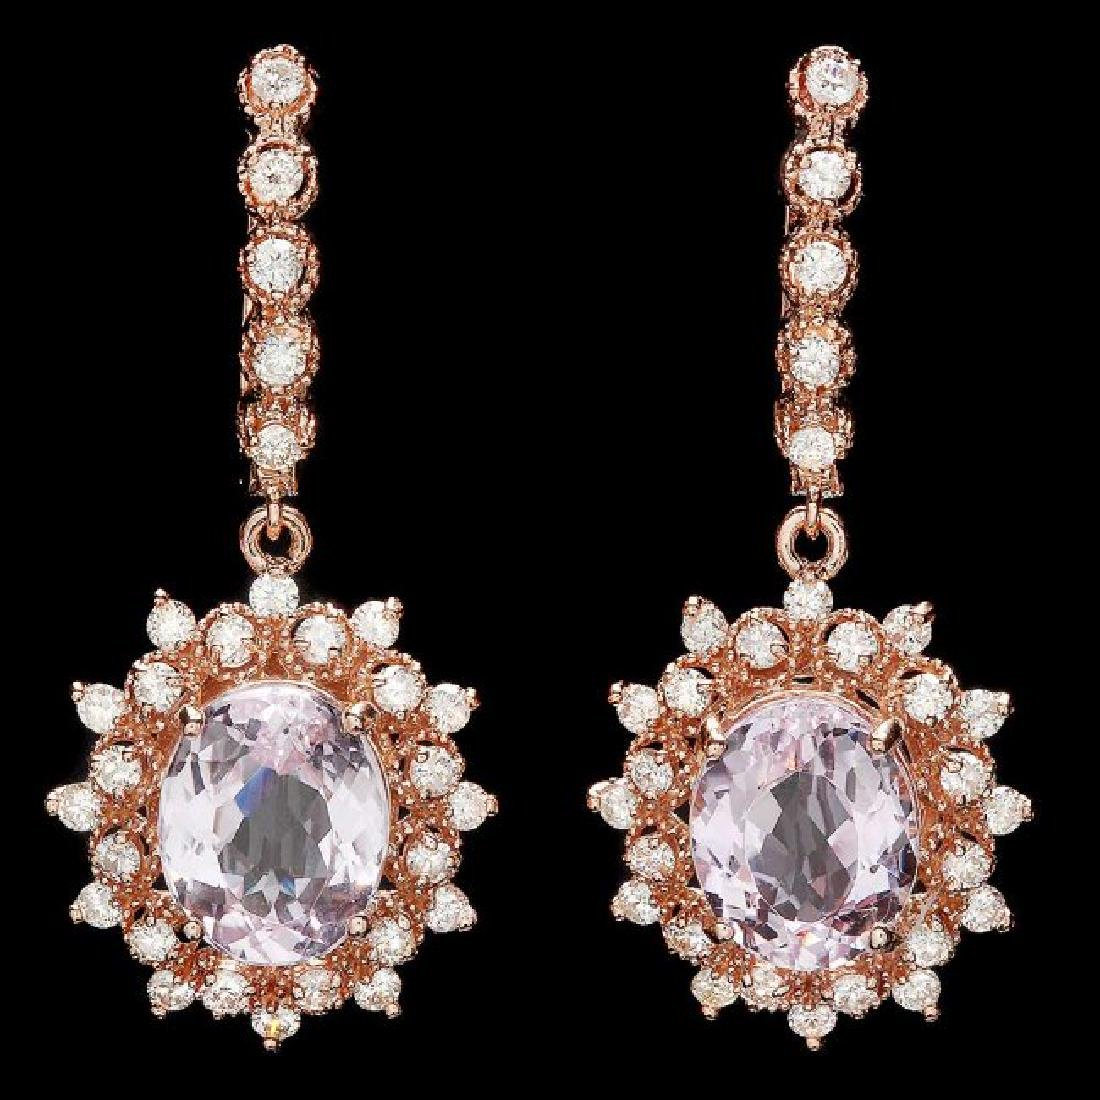 14k Rose 8.00ct Kunzite 1.70ct Diamond Earrings